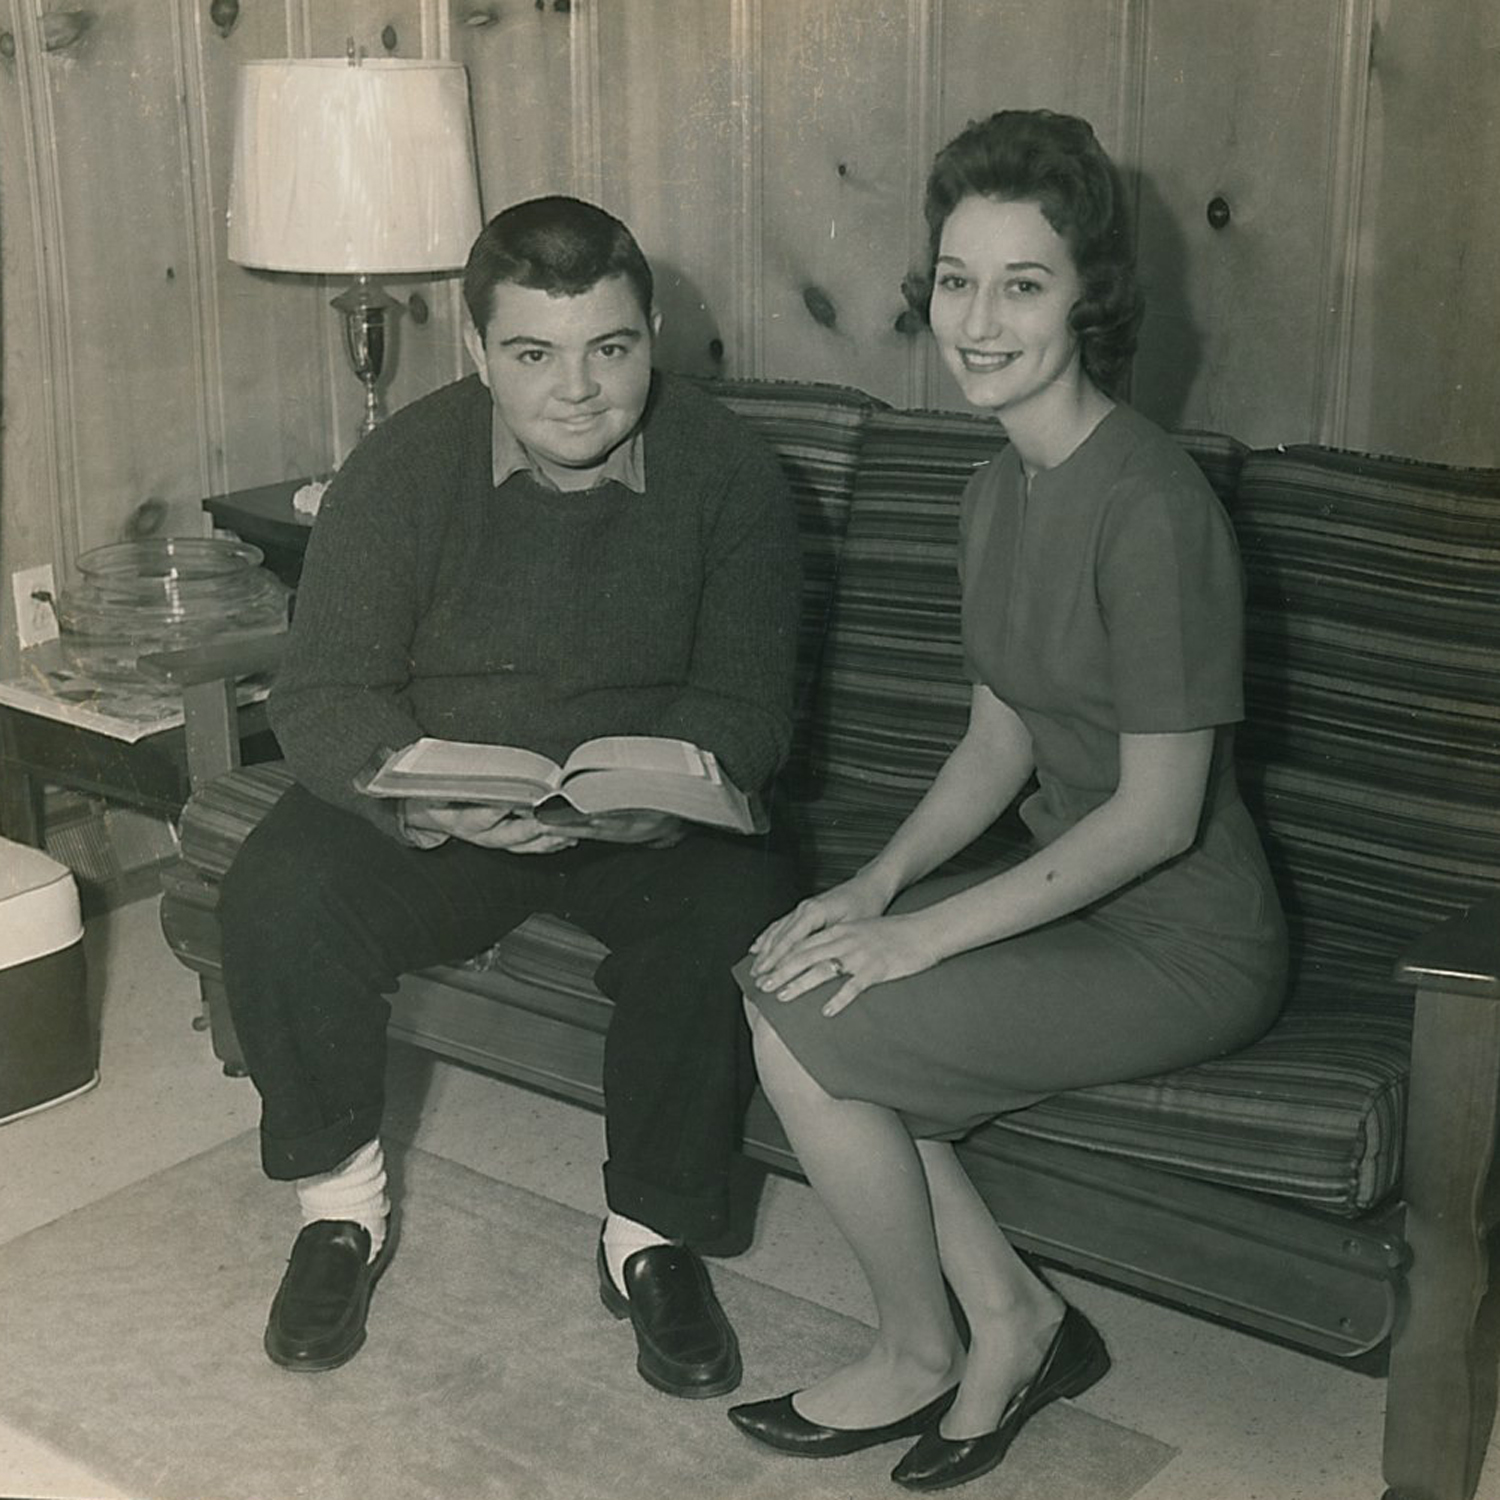 Wood paneling. This was taken around 1960, so the 1950s influences were still very noticeable. Love it though!